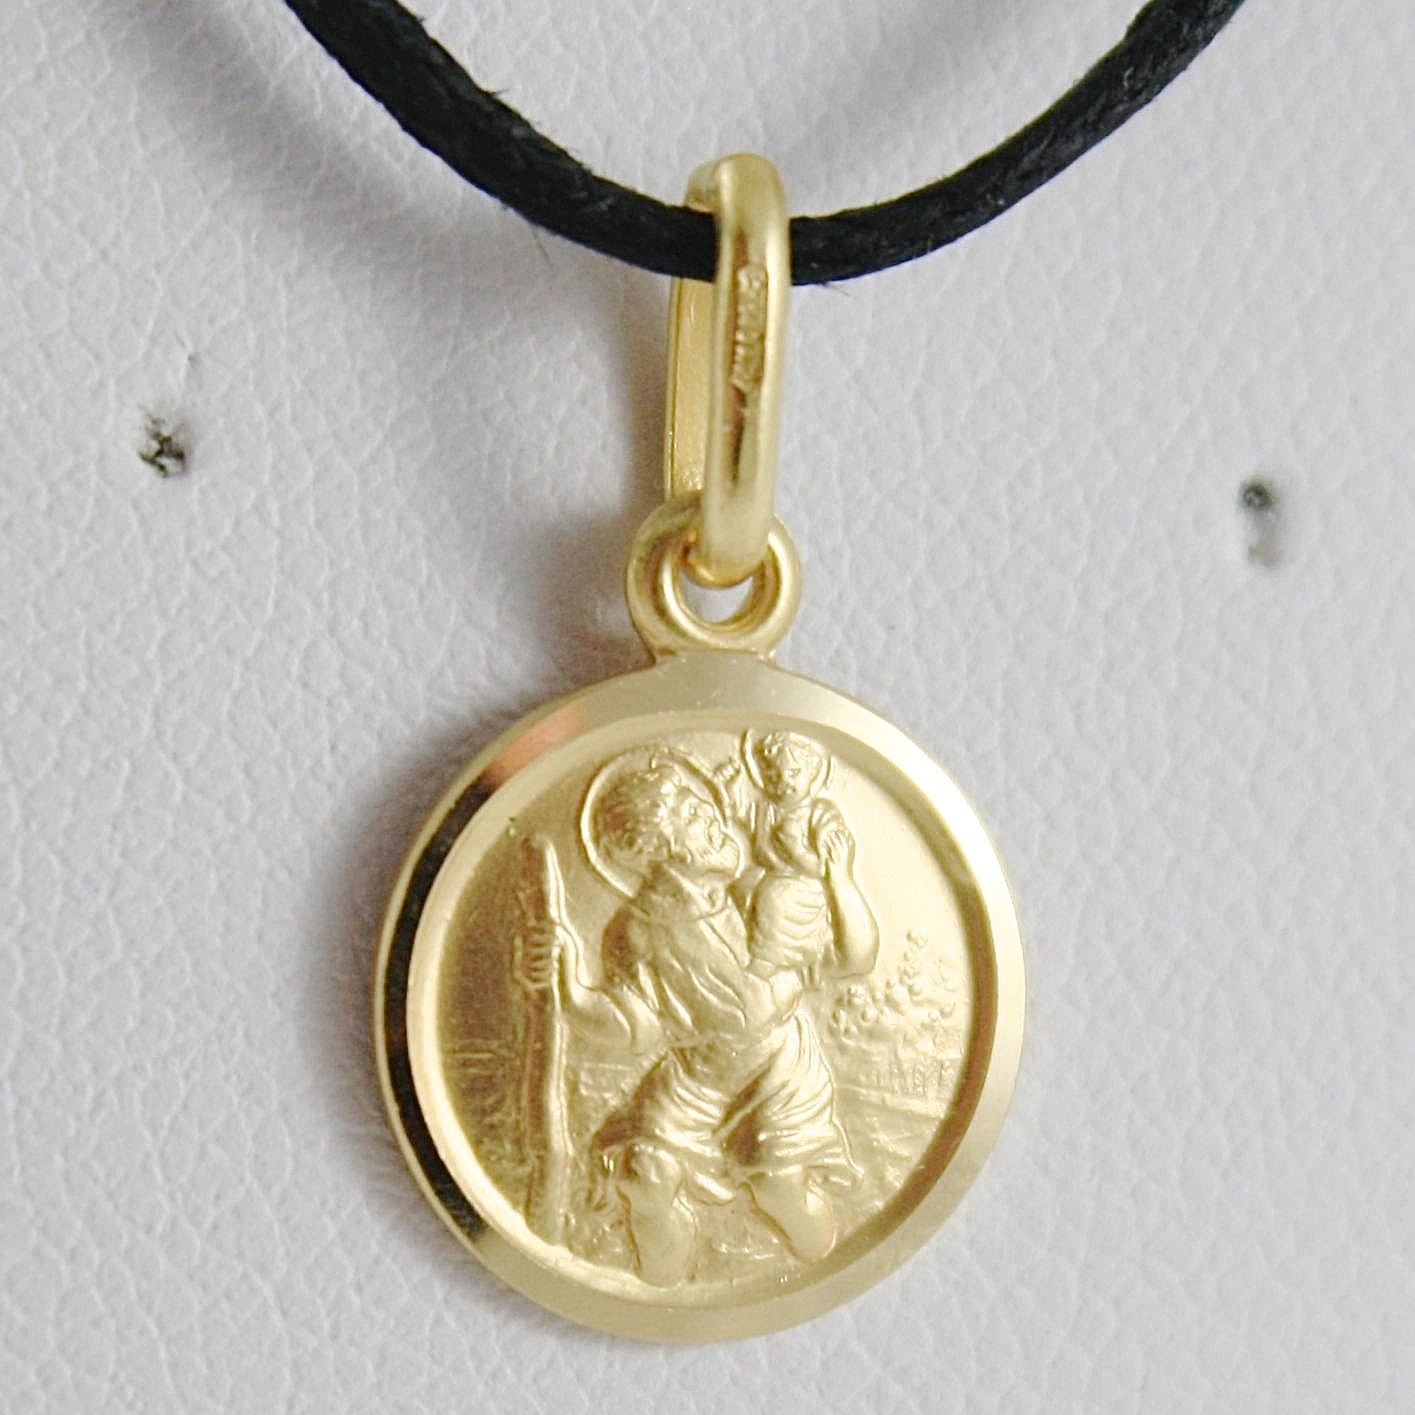 Medal Charm in Yellow 750 18k, St. Christopher 13 mm, Made in Italy